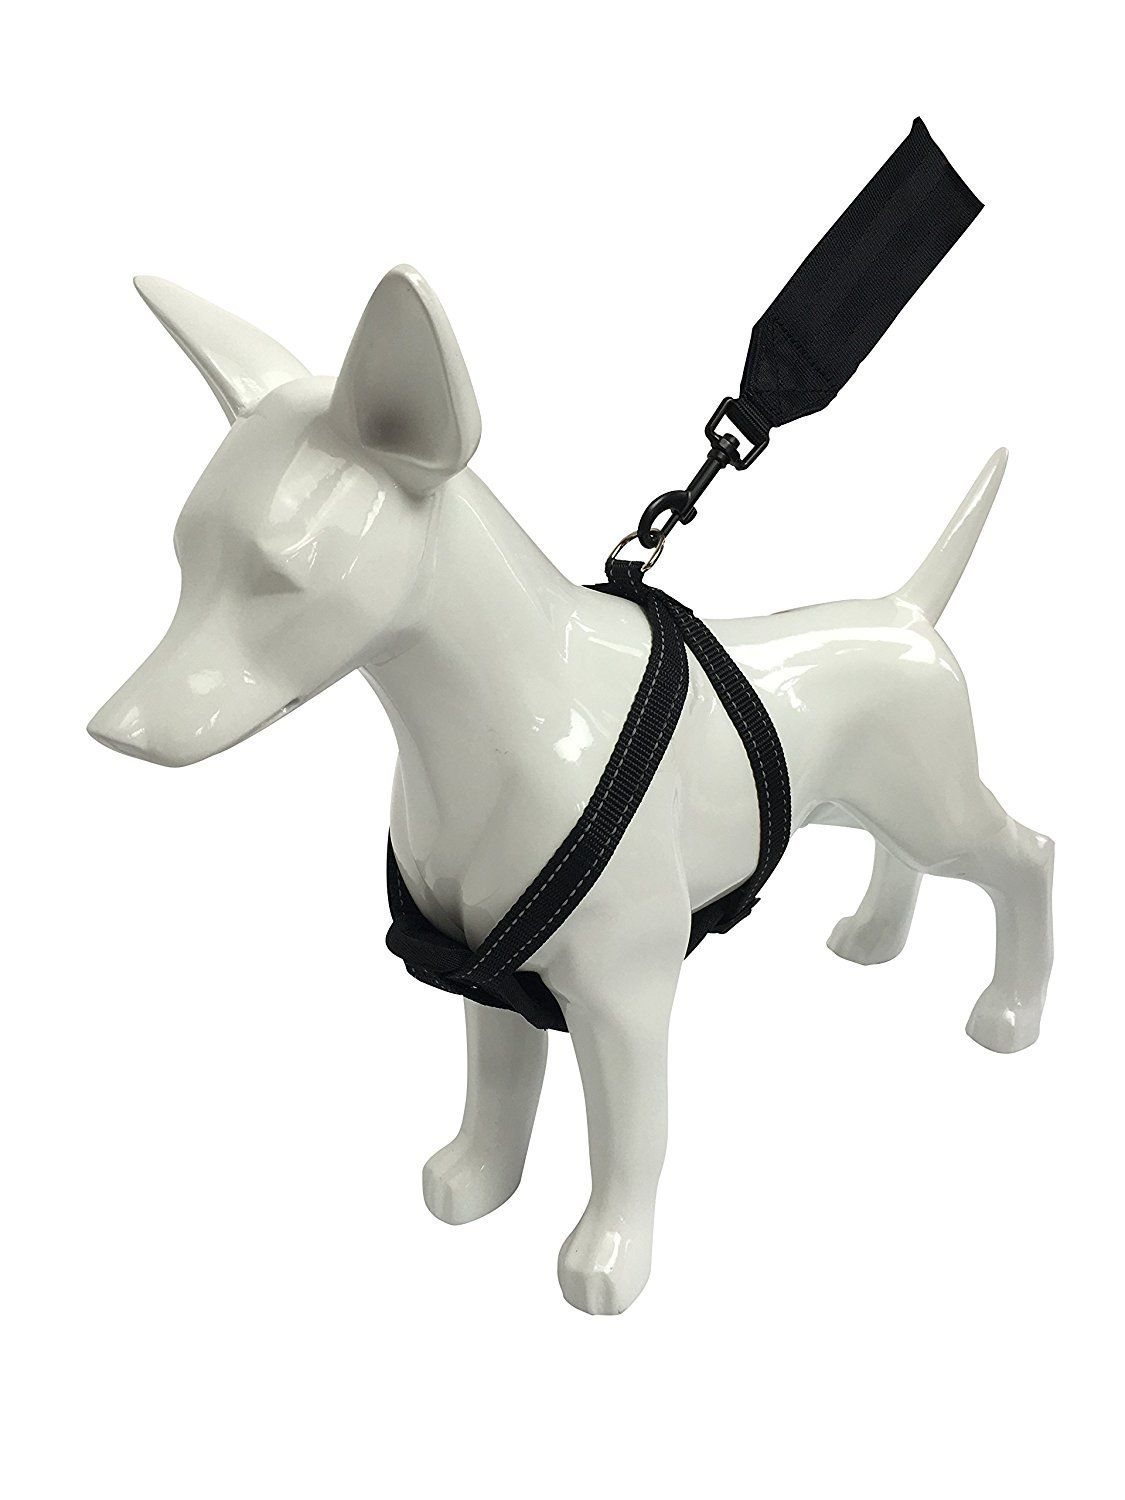 Chest Plate Dog Harness For Car With Seatbelt Black Large By